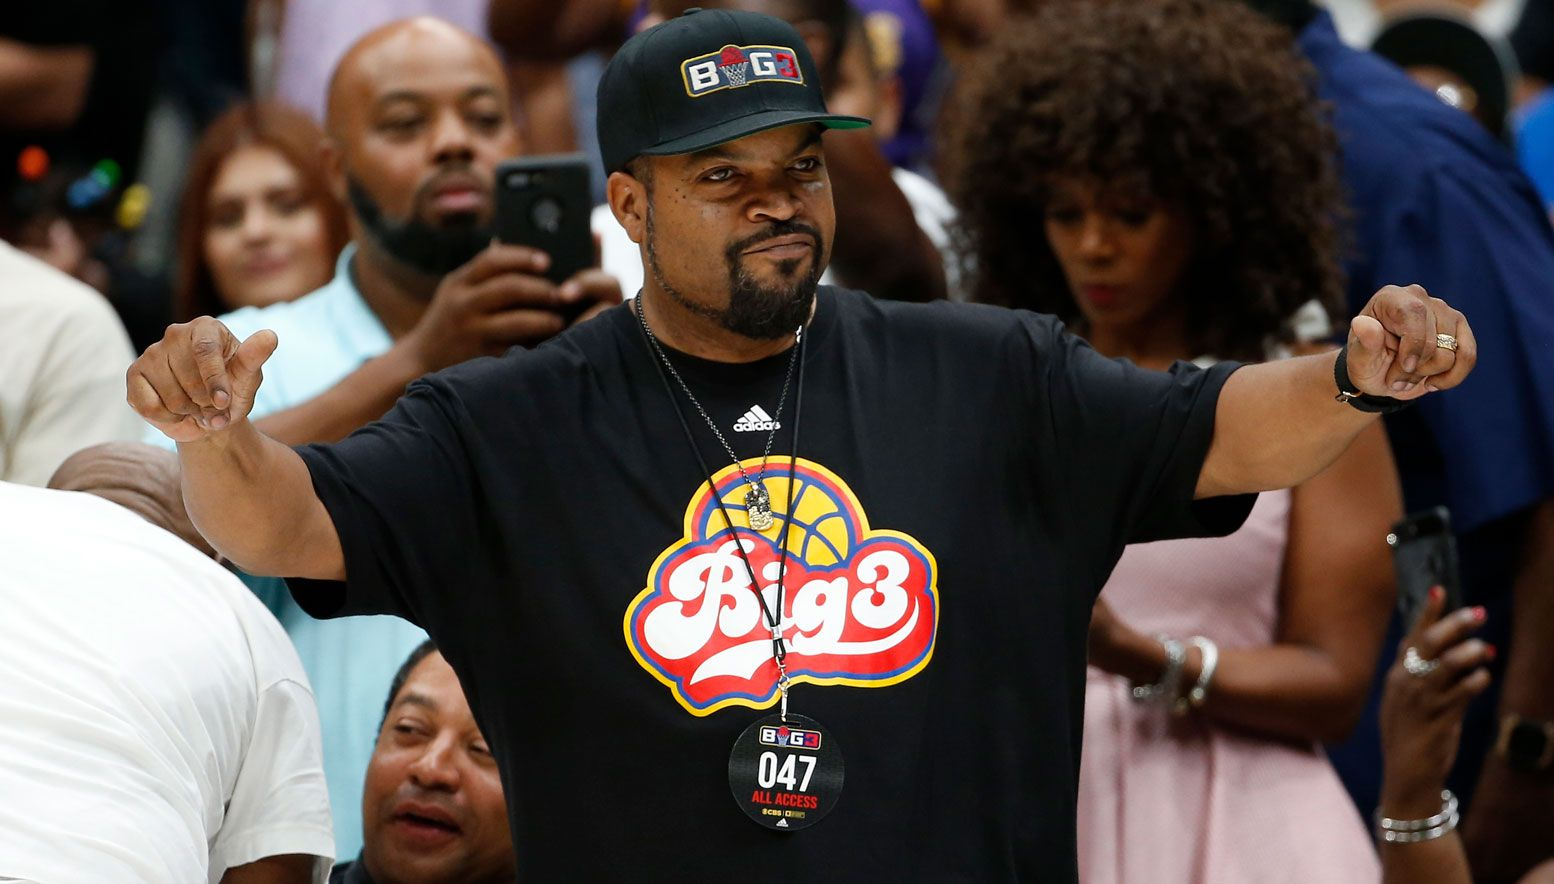 Ice Cube and Big3